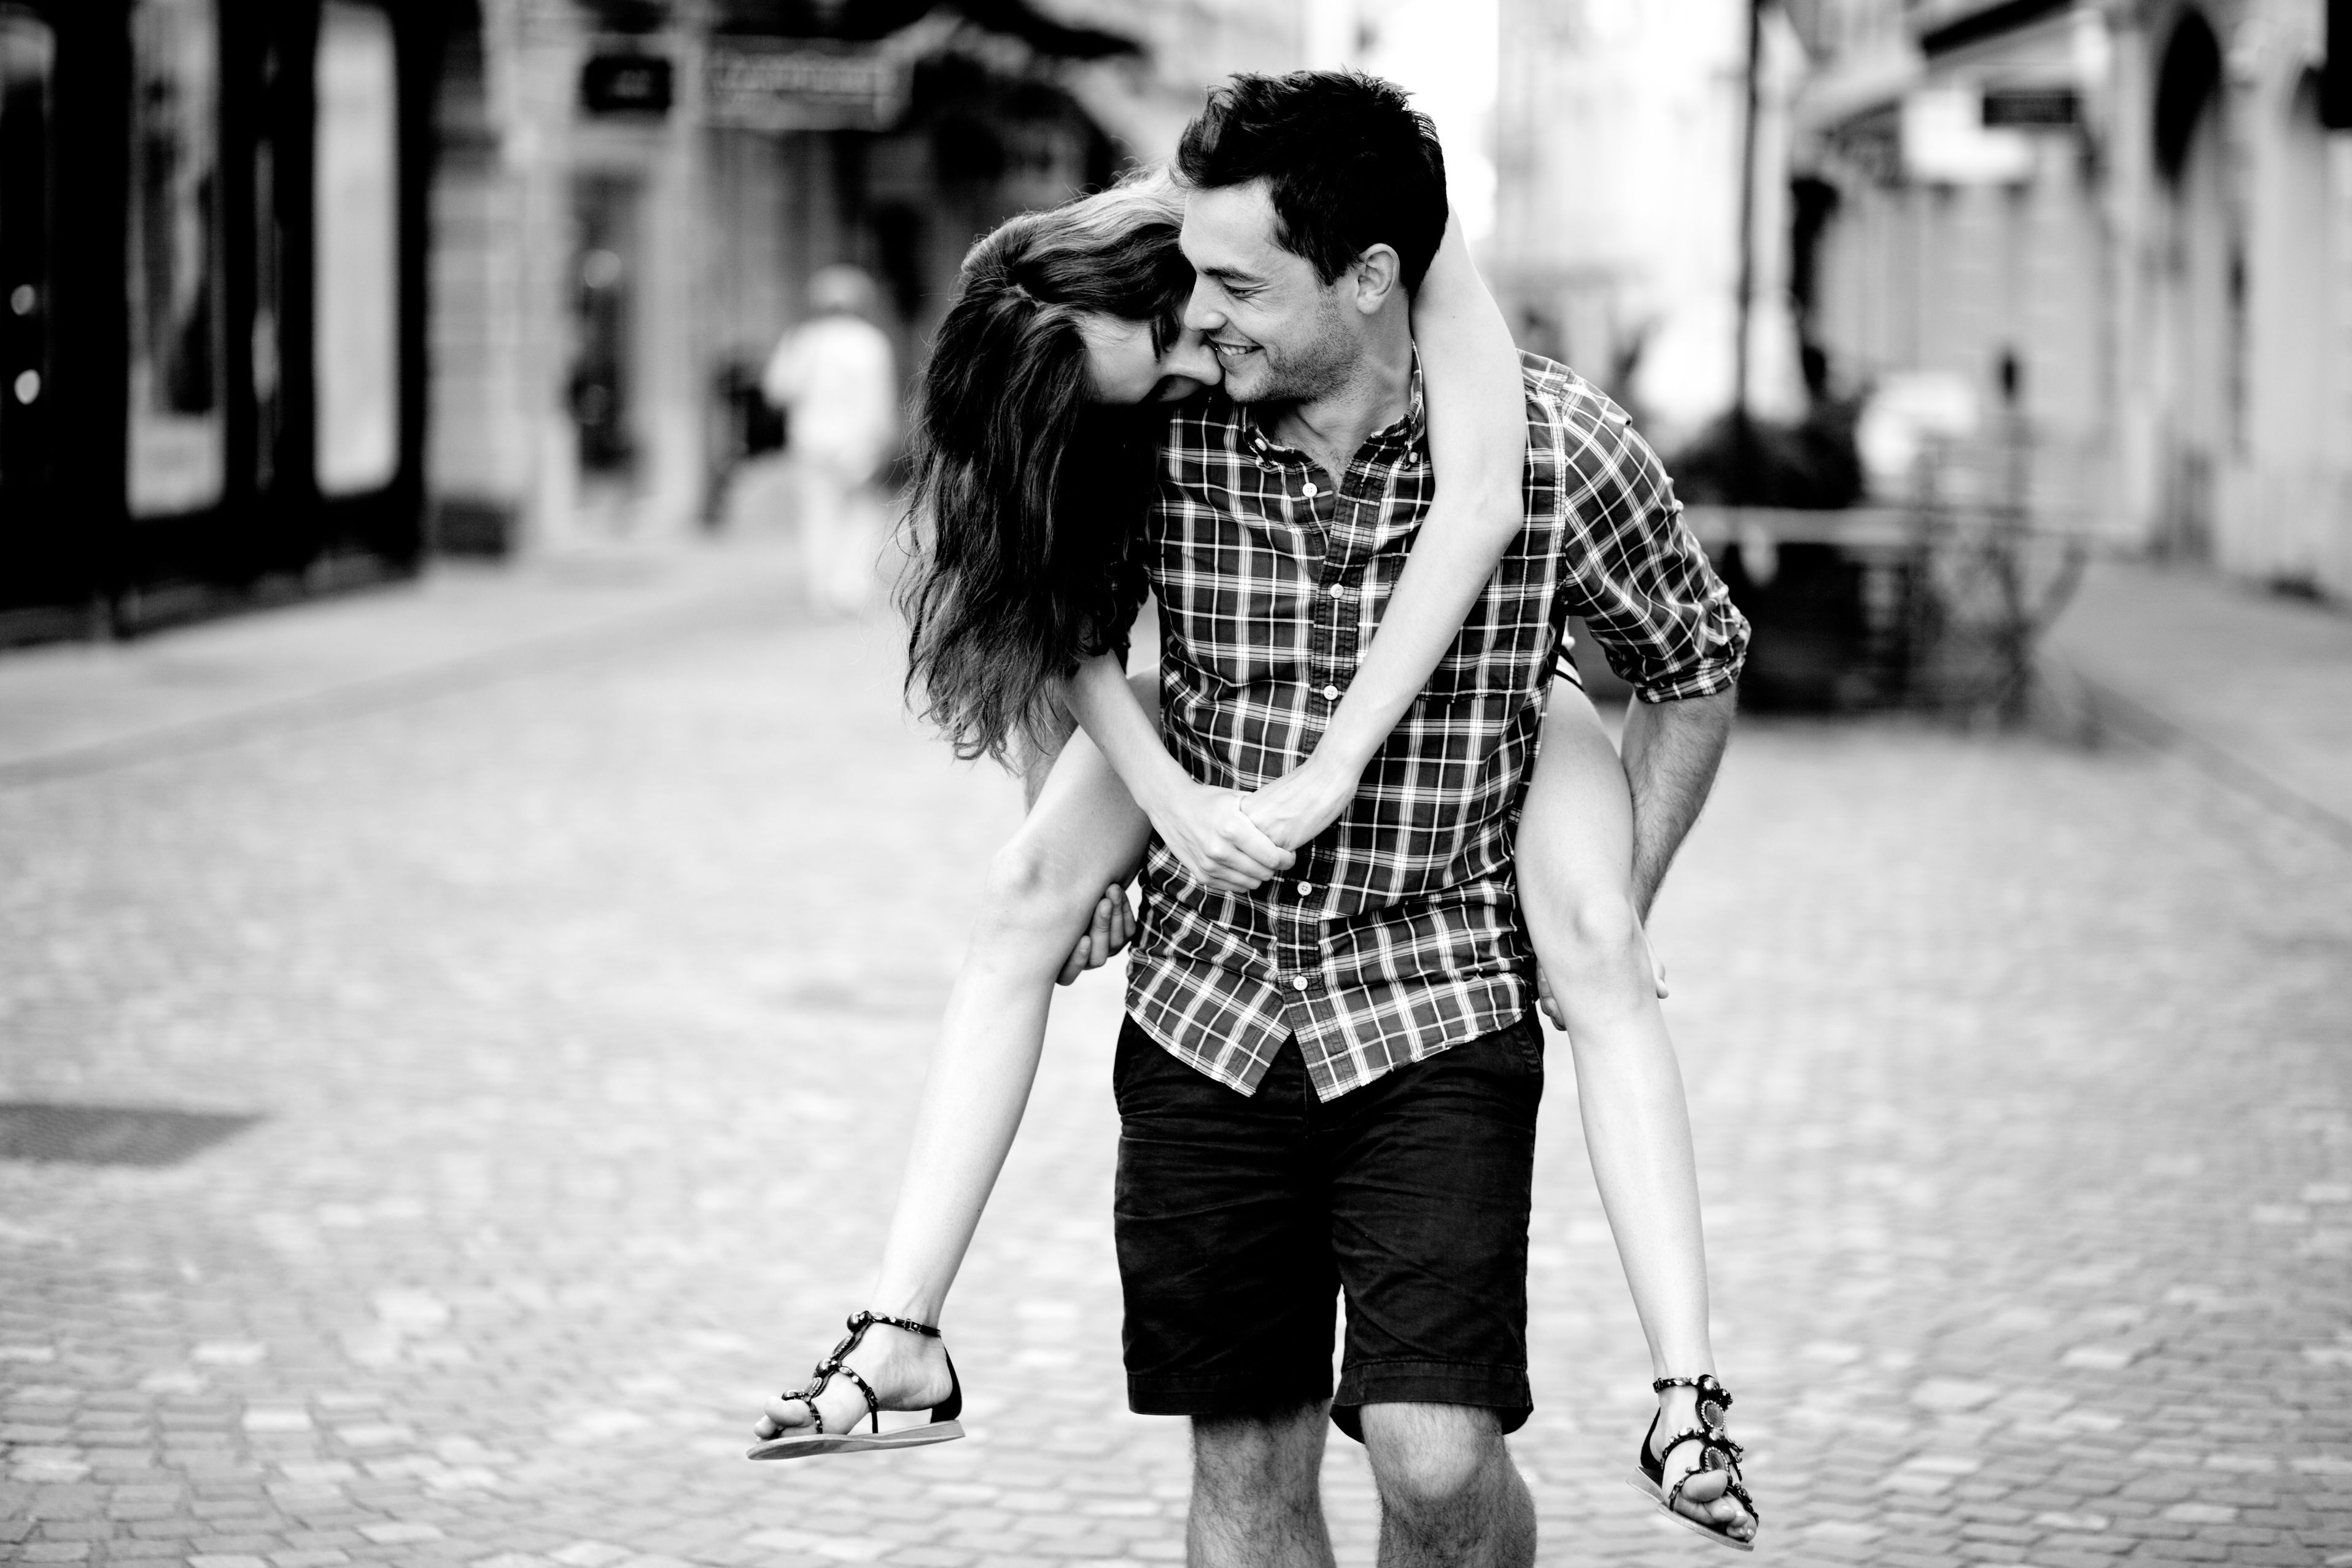 Download Wallpaper Girl Love Joy Happiness Smile Background Street Romance Save It